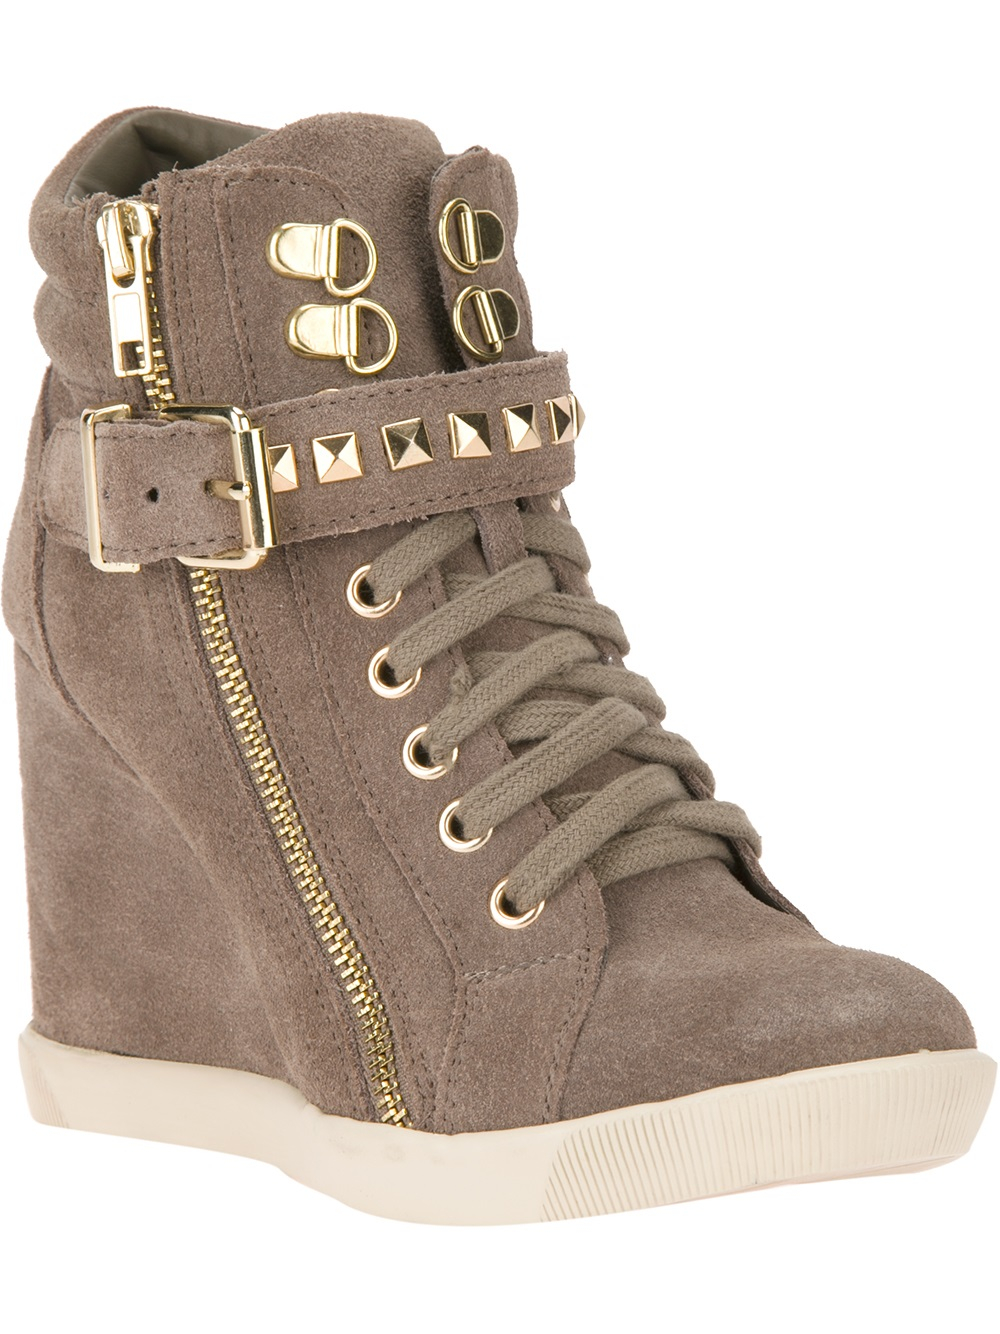 1561b8634fc Lyst - Steve Madden Obsess Wedge Sneaker in Brown